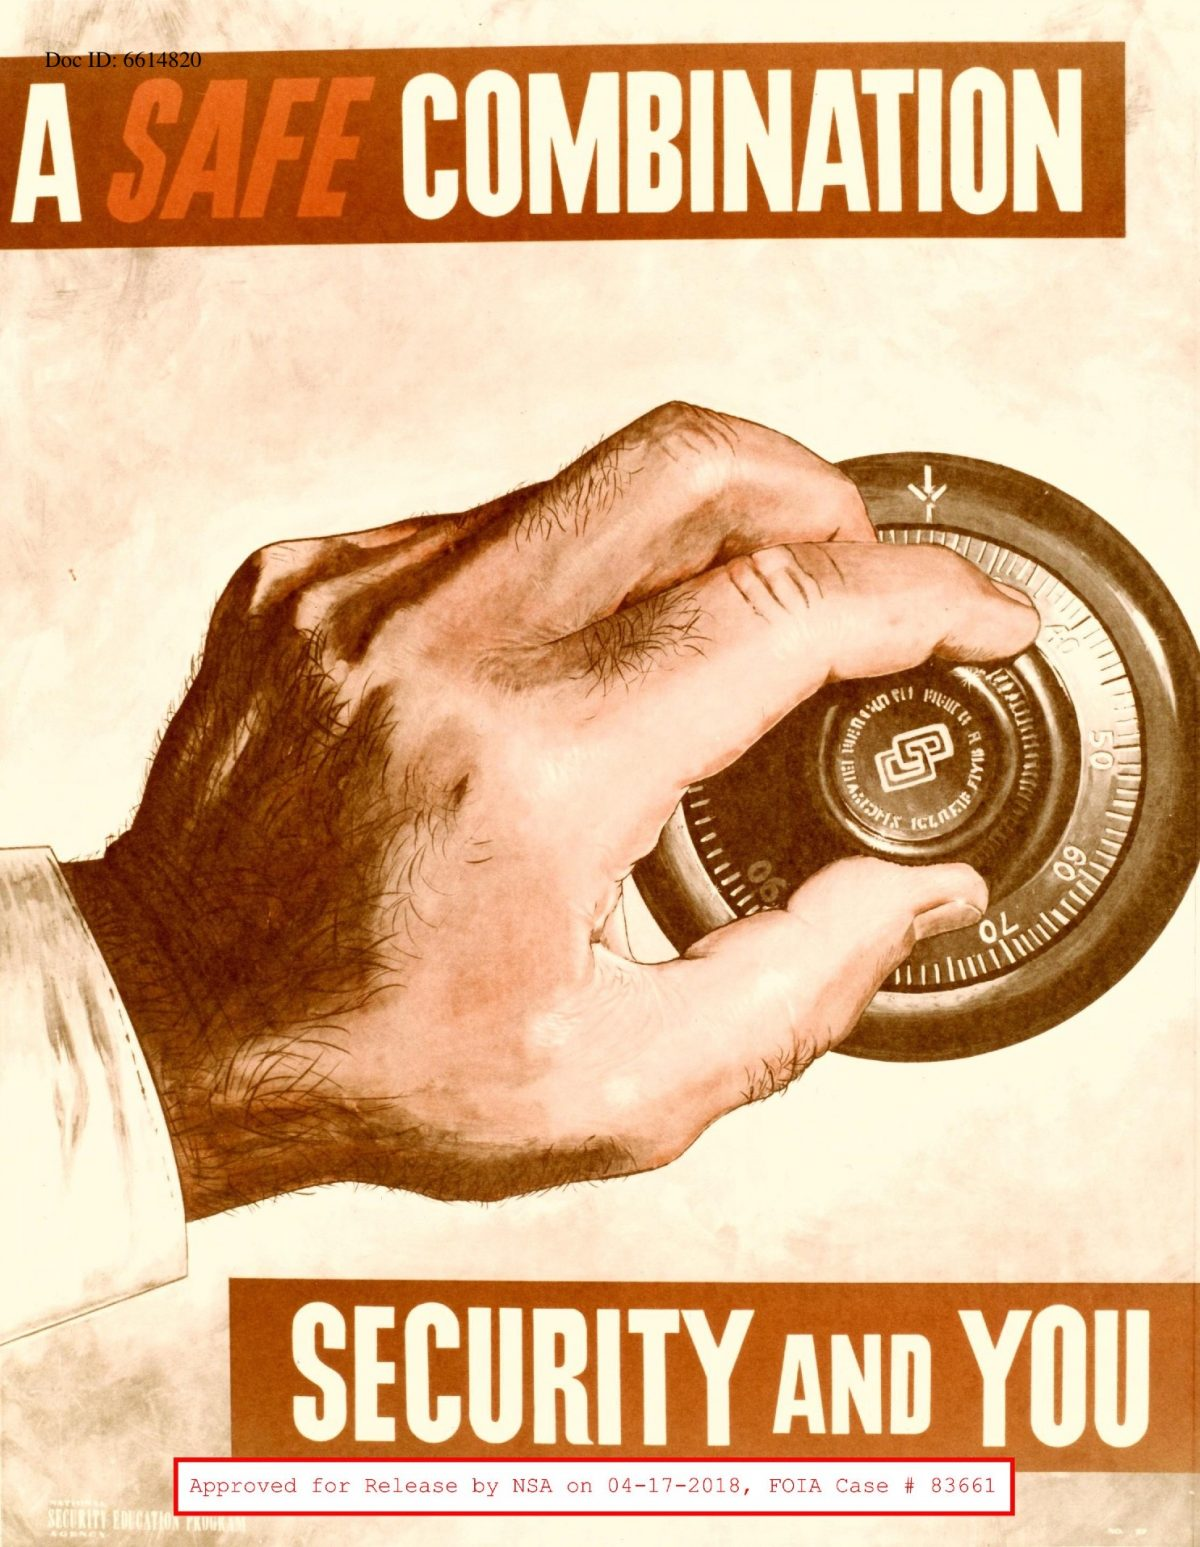 NSA posters 1950s 1960s